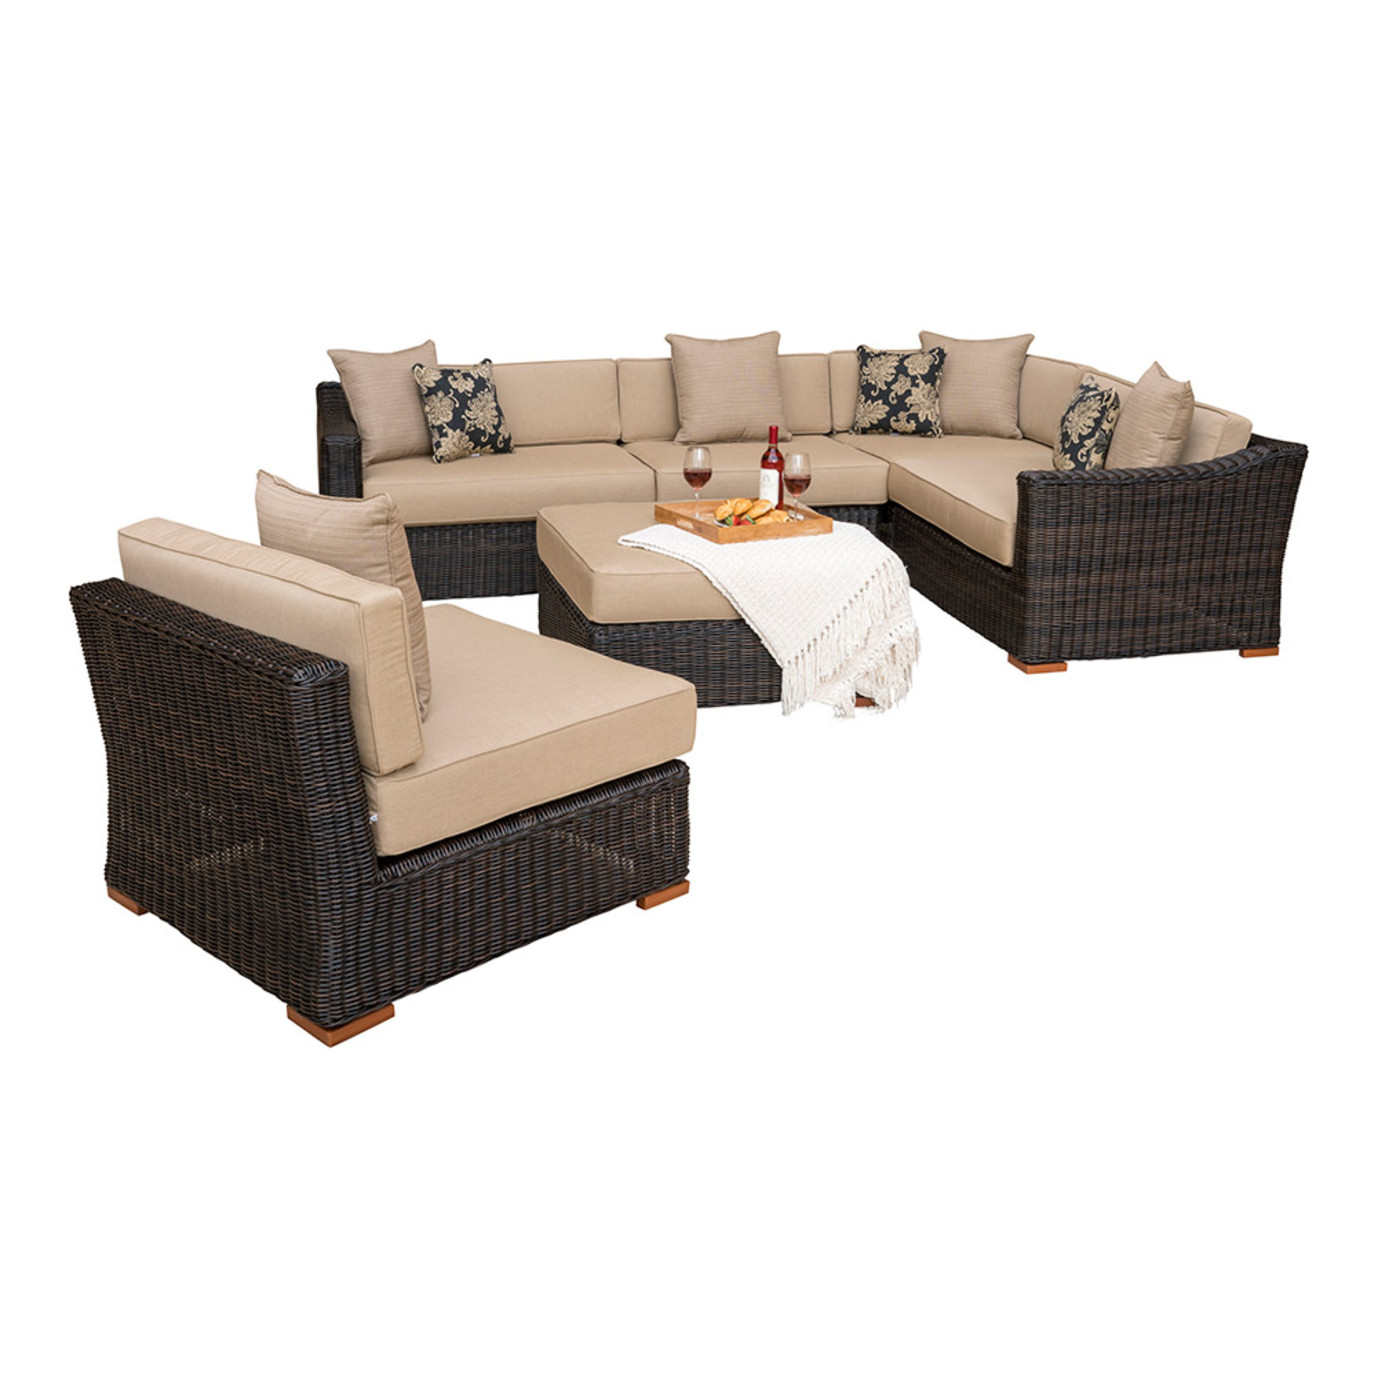 Resort™ 6pc Sectional Set with Ottoman – Espresso/Heather Beige